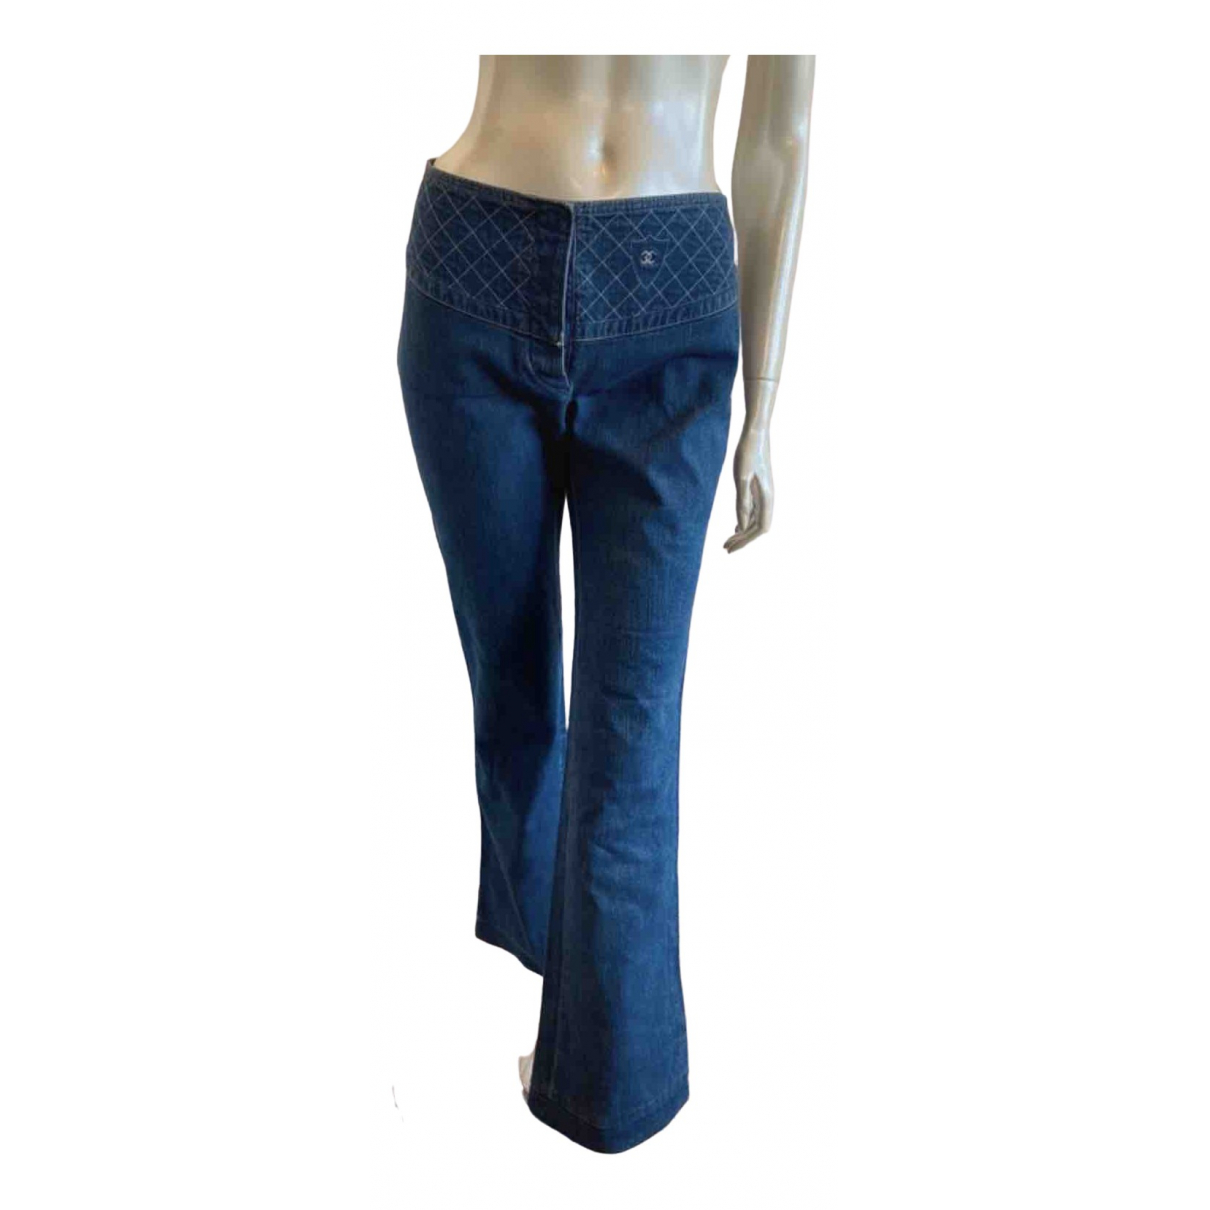 Chanel \N Blue Denim - Jeans Jeans for Women 38 FR